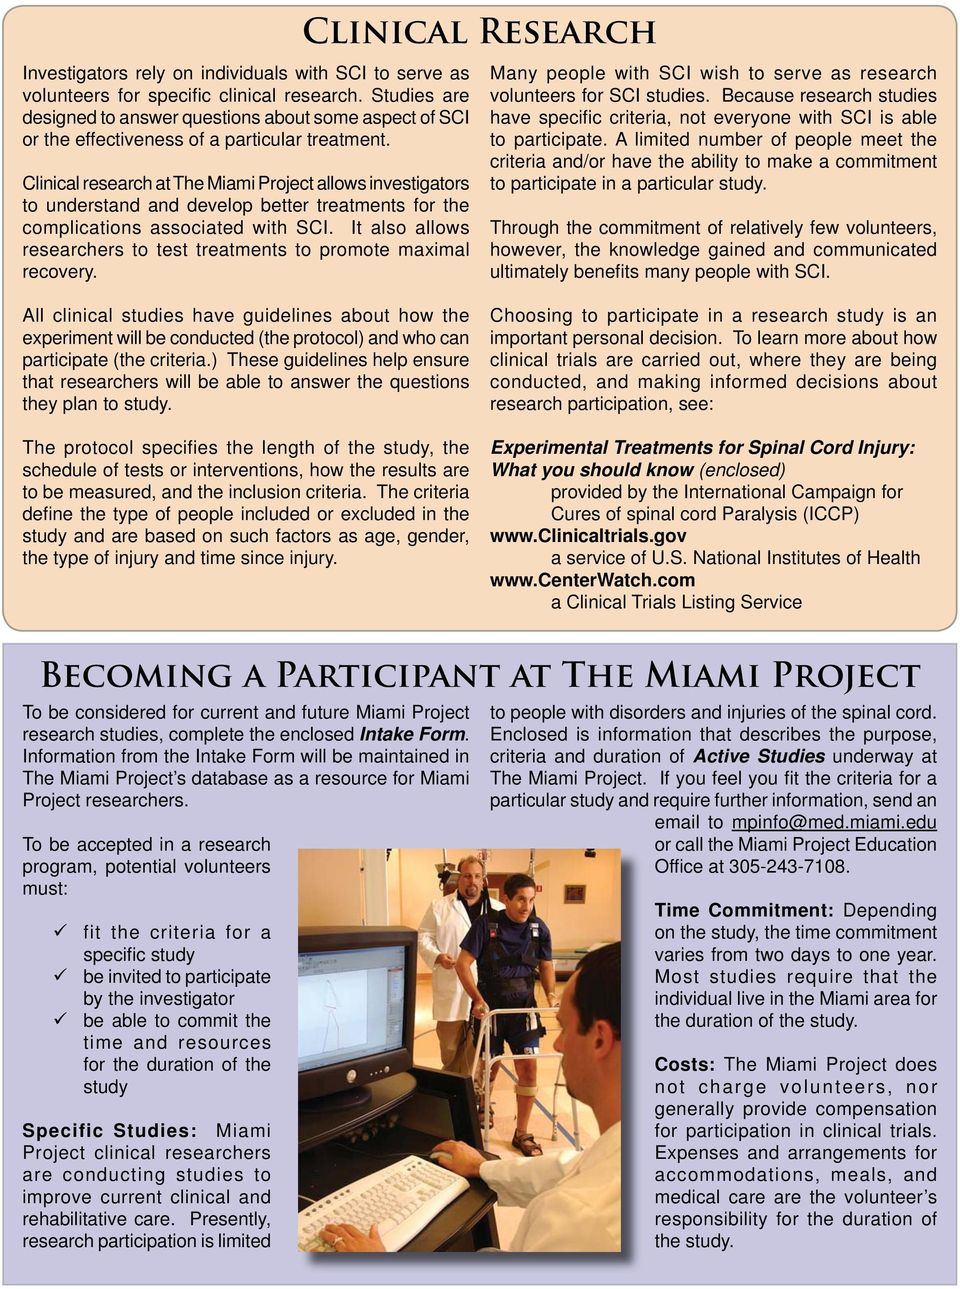 Clinical research at The Miami Project allows investigators to understand and develop better treatments for the complications associated with SCI.